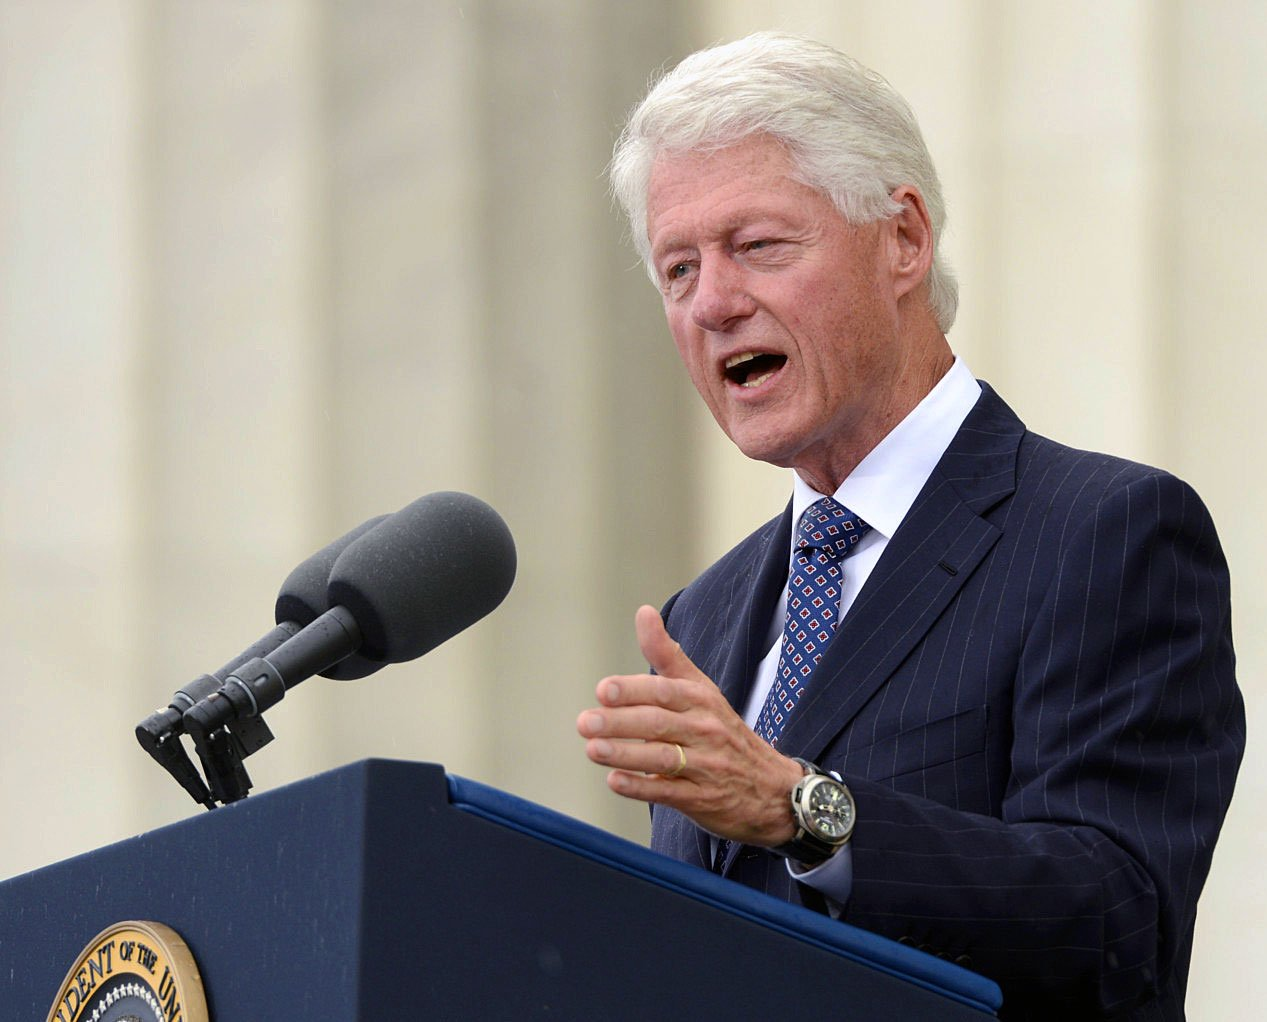 Bill-Clinton-Panerai.